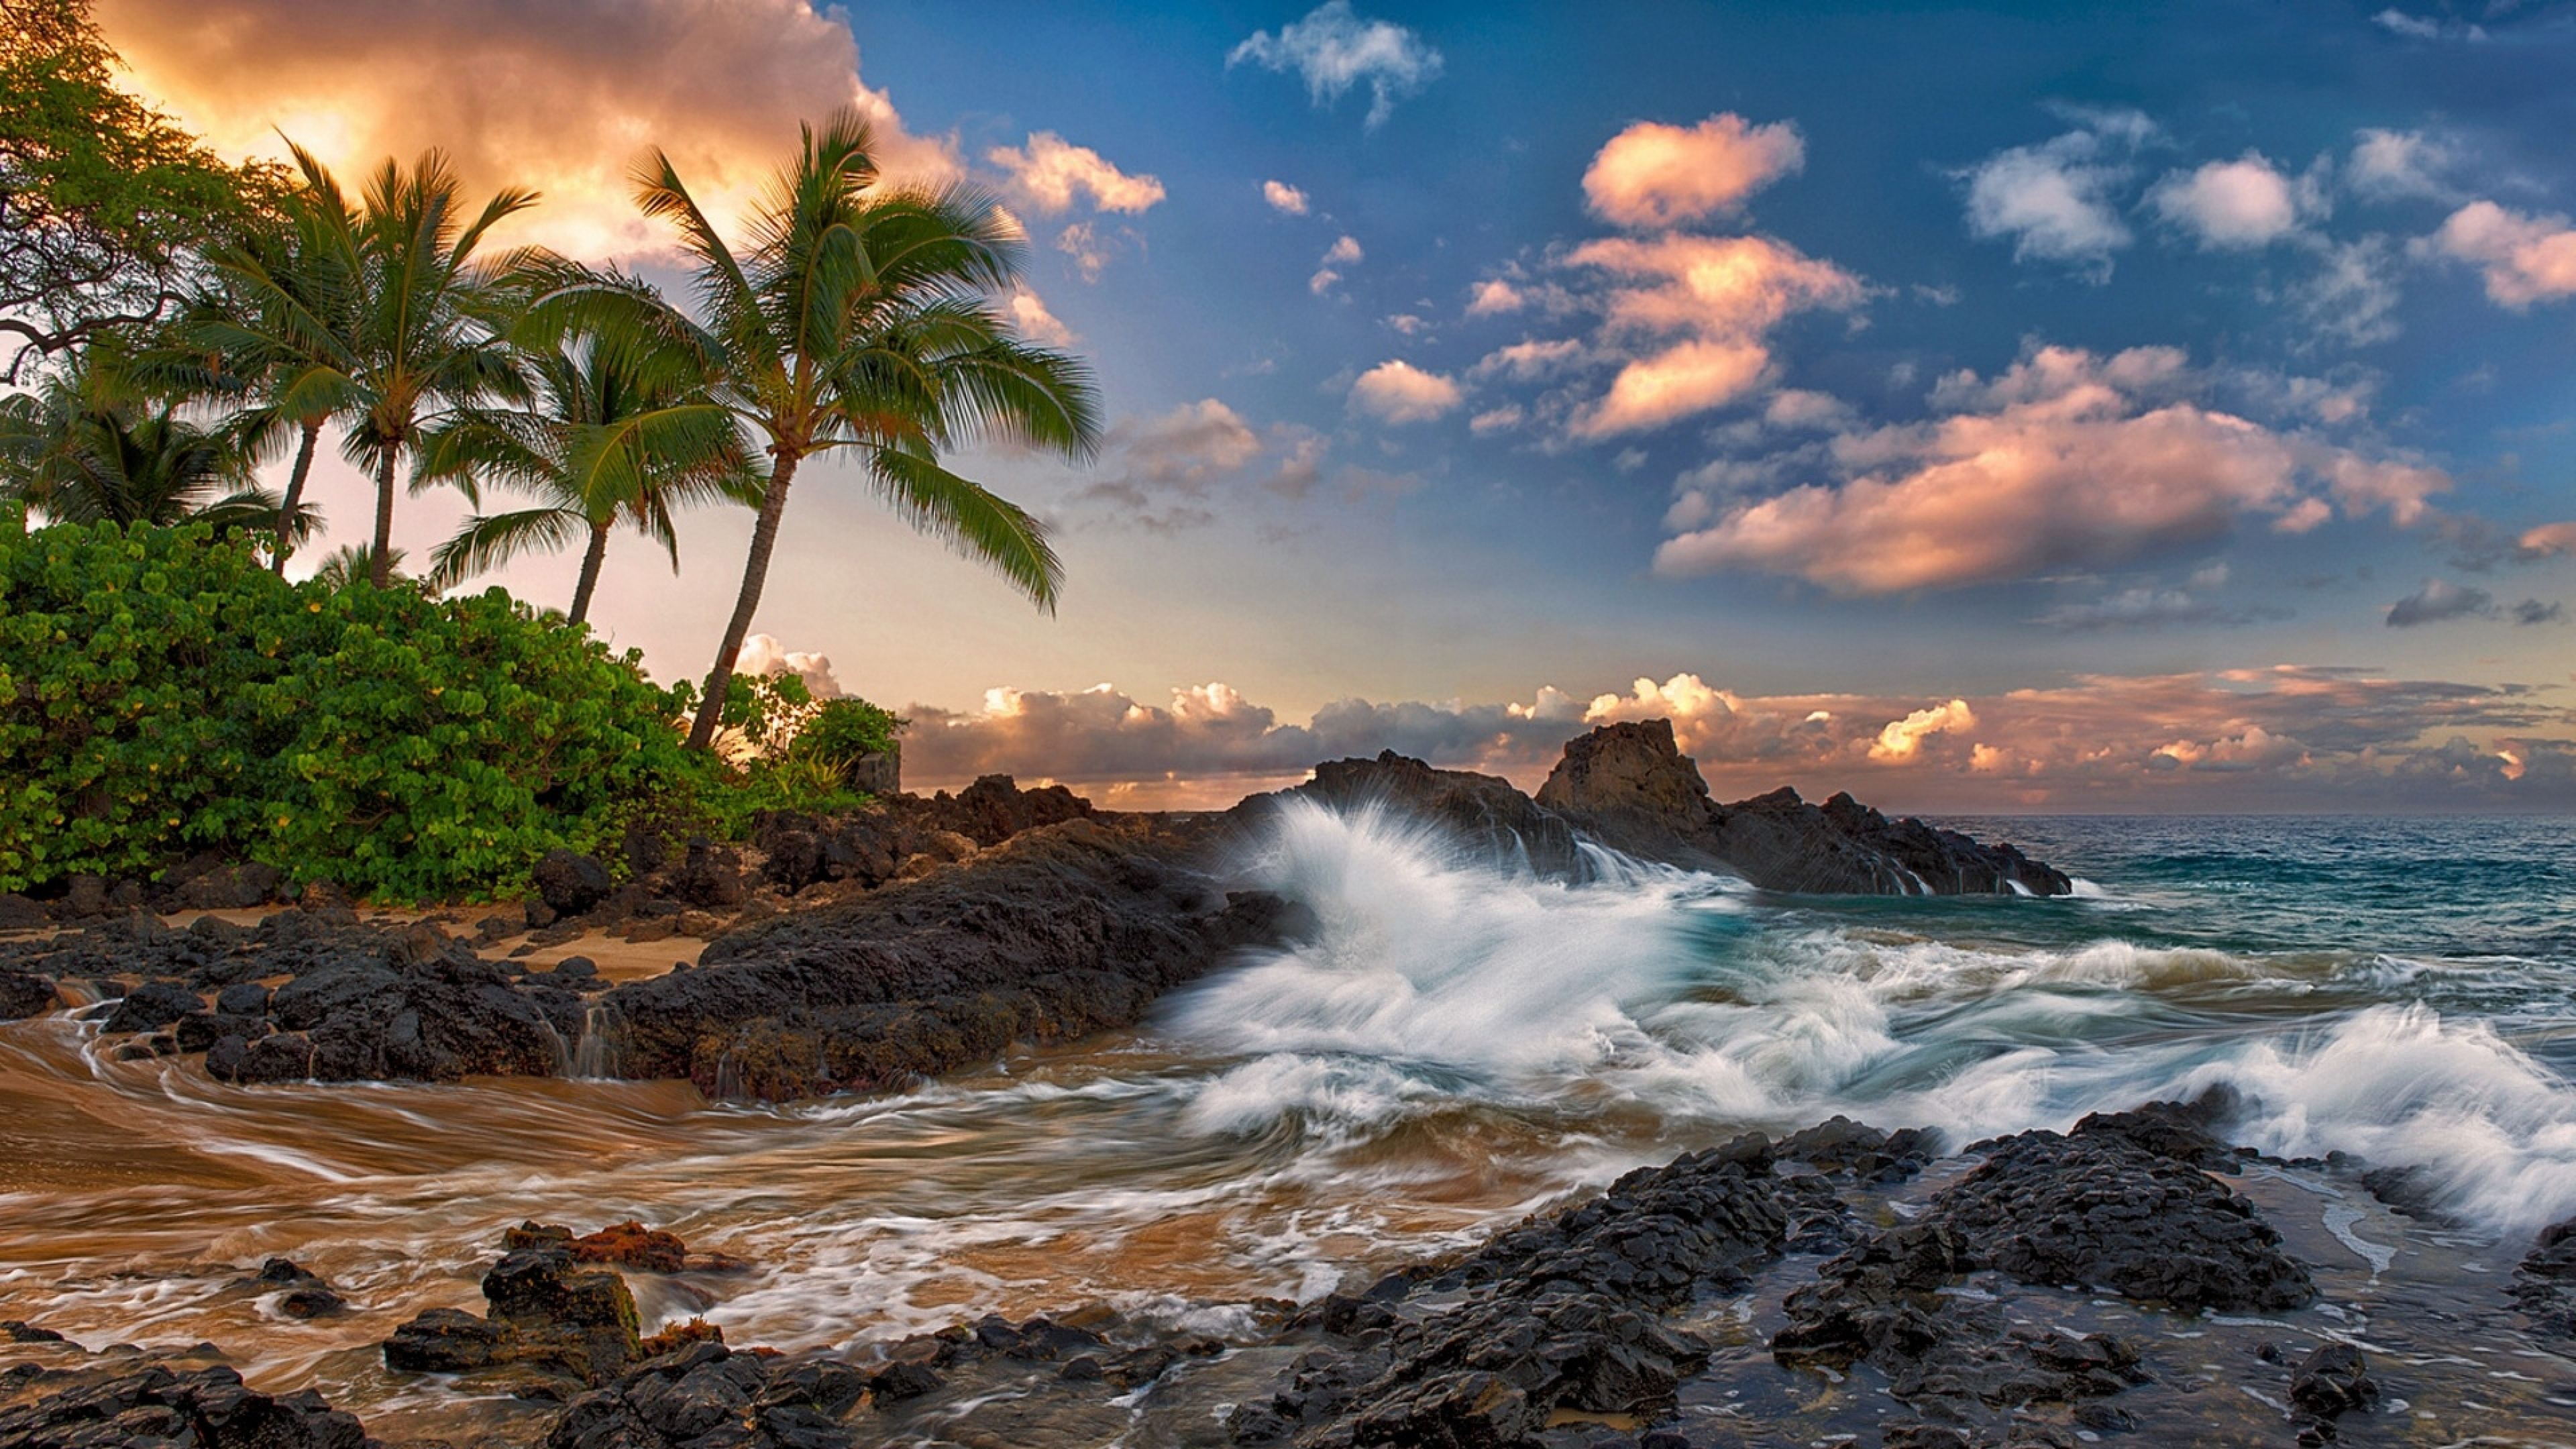 4k ocean wallpapers wallpapersafari - Desktop wallpaper 4k ...